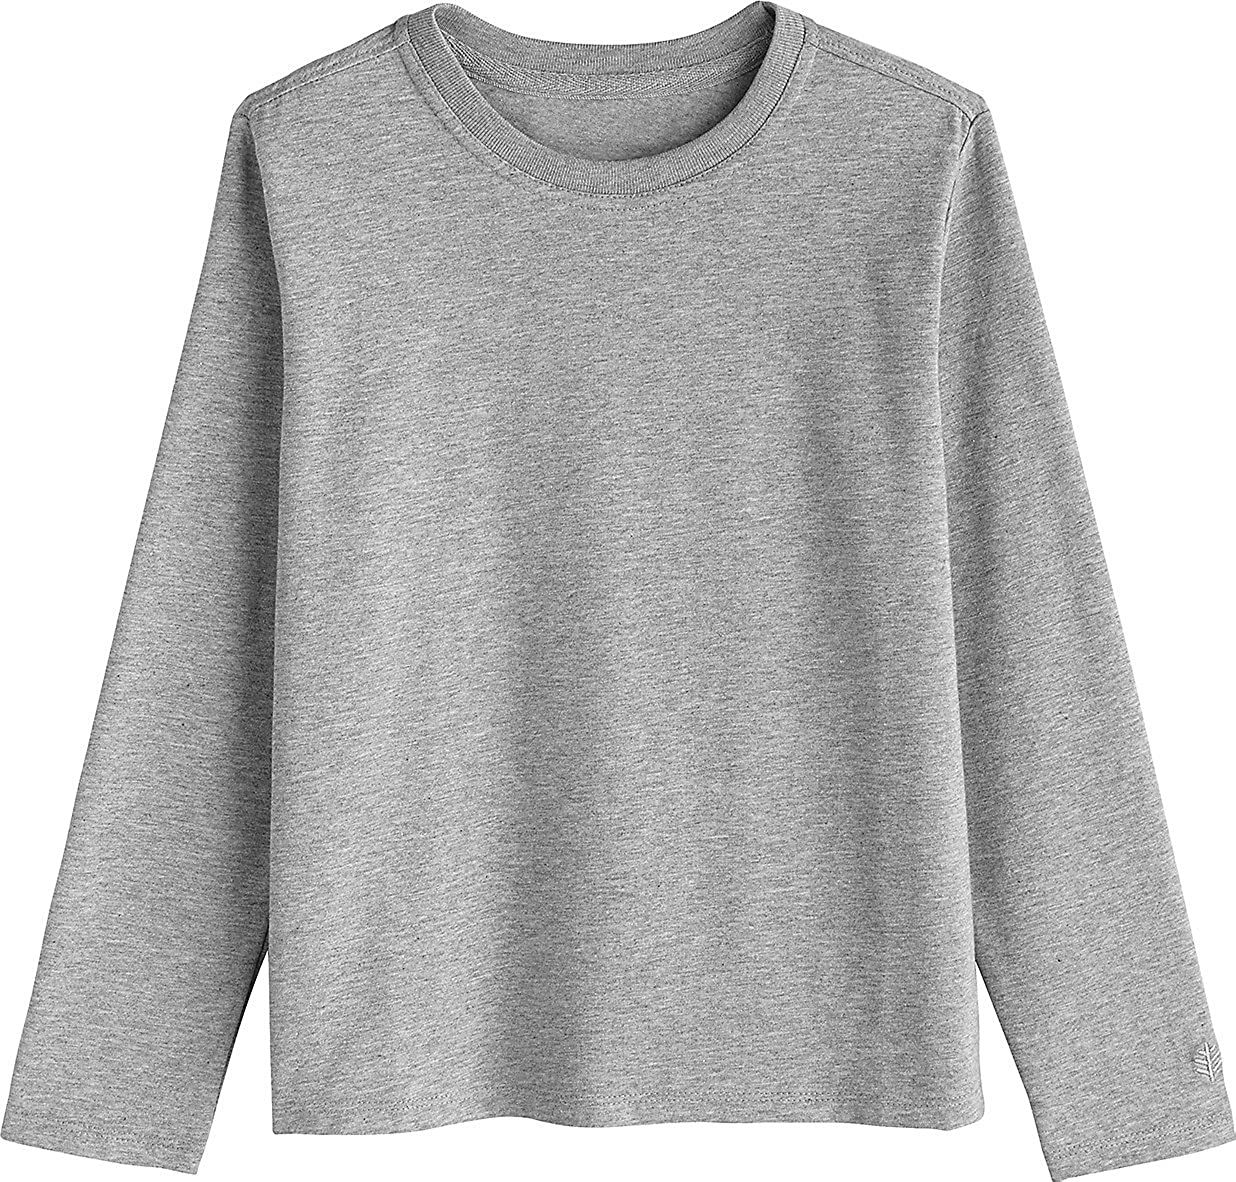 Coolibar UPF 50+ Kid's Coco Plum Everyday Denver Mall Outlet ☆ Free Shipping T-Shirt - Long Sleeve